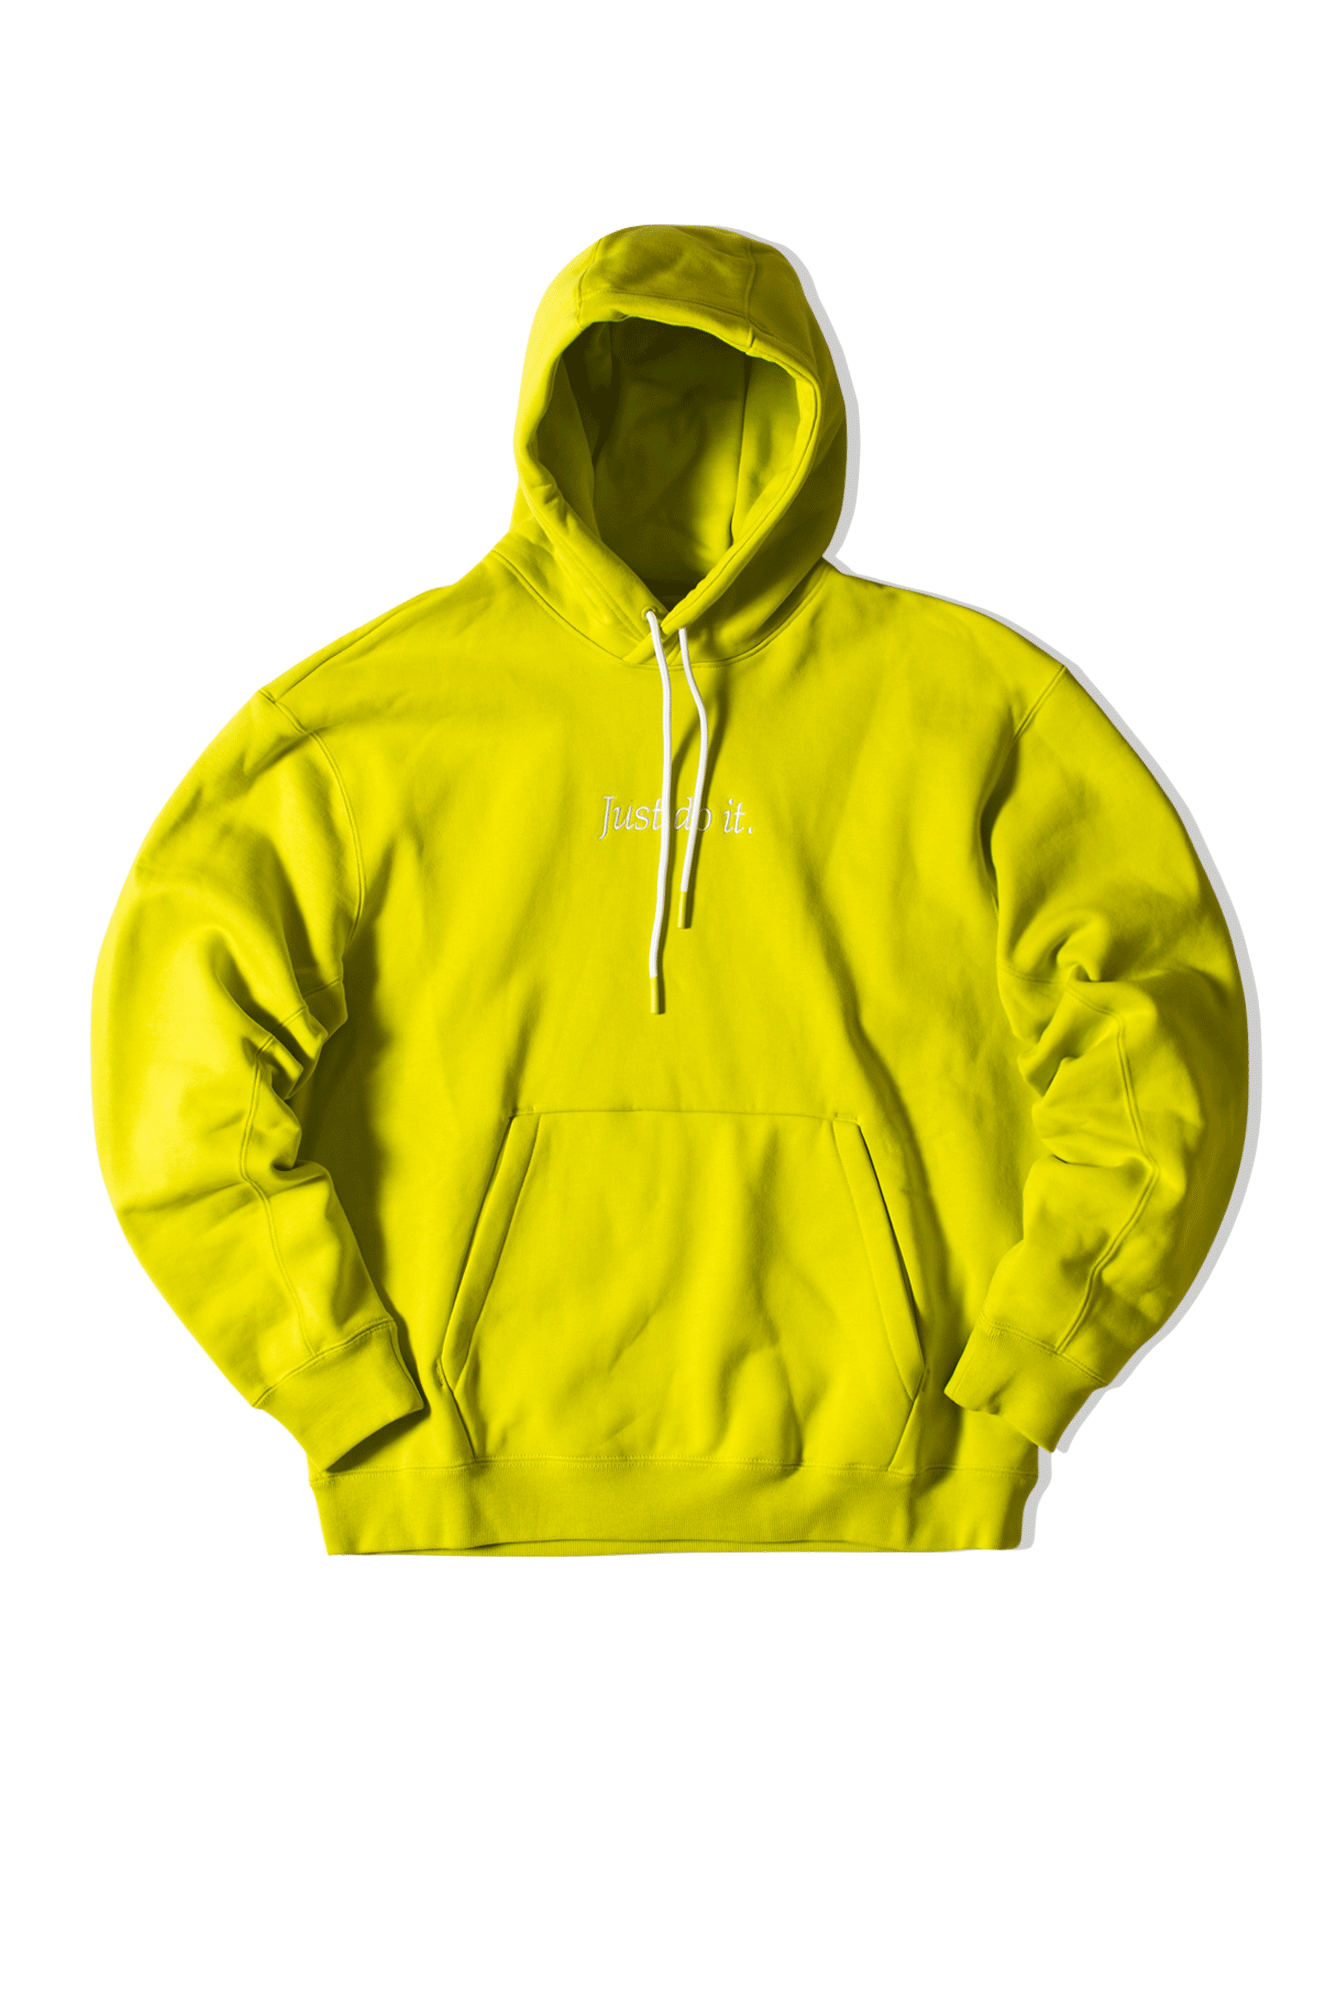 Just Do It Fleece Hoodie Green